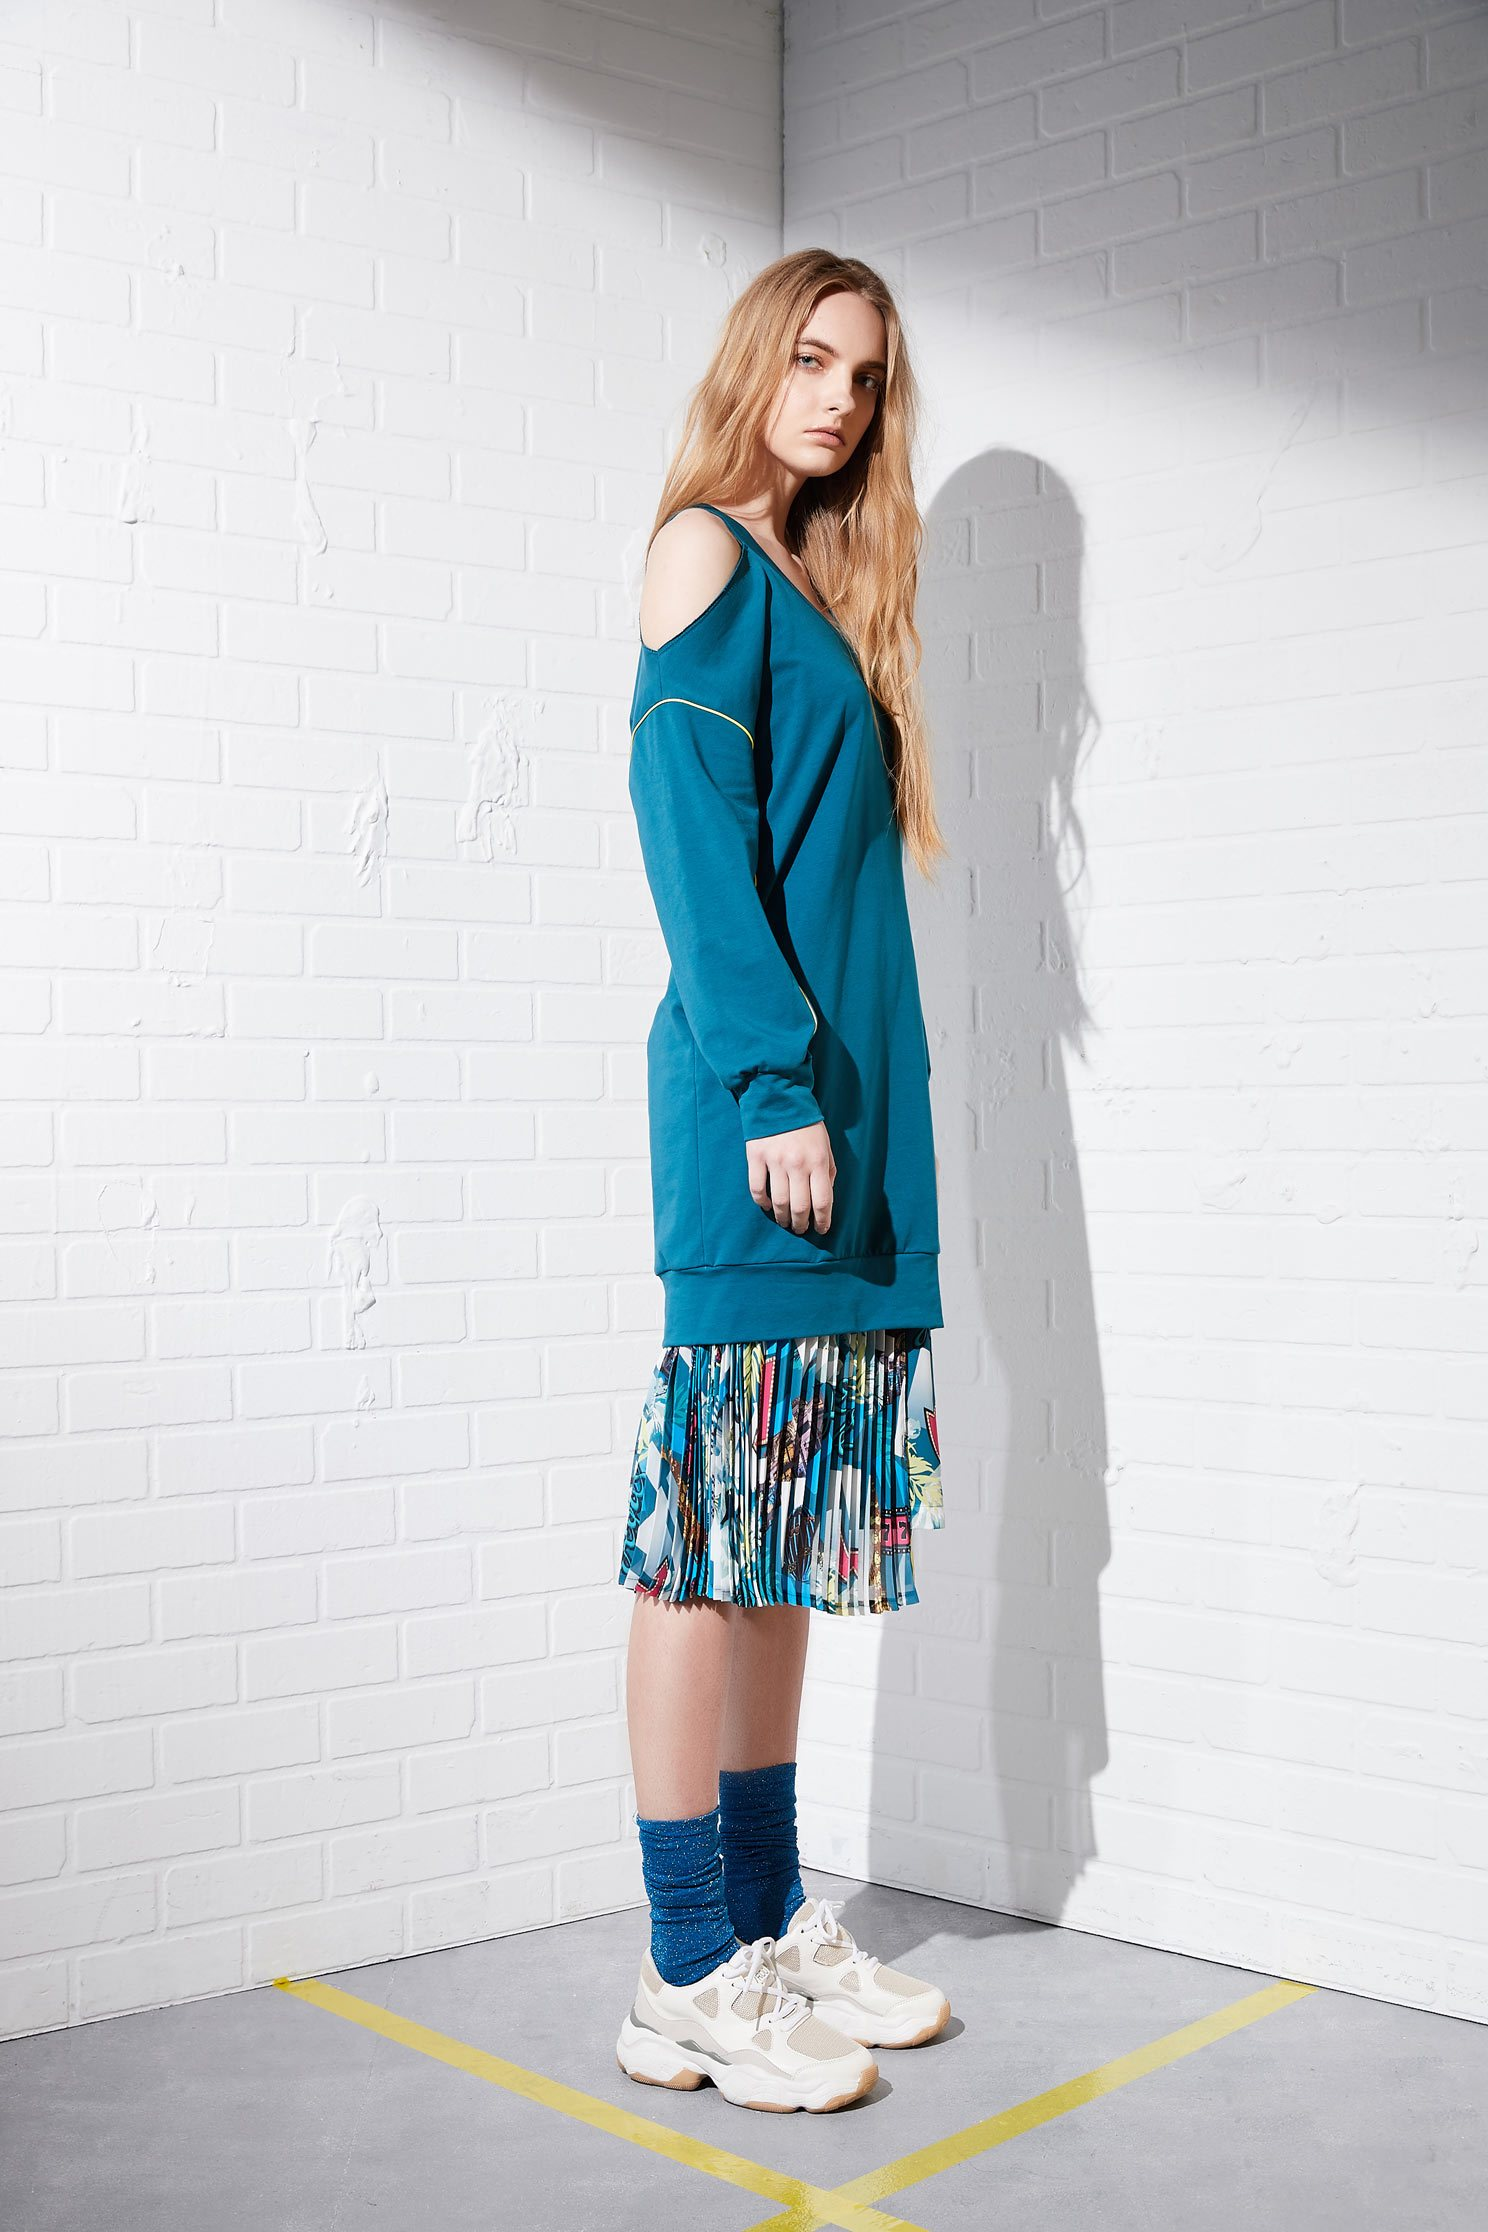 Knitting fashion dress